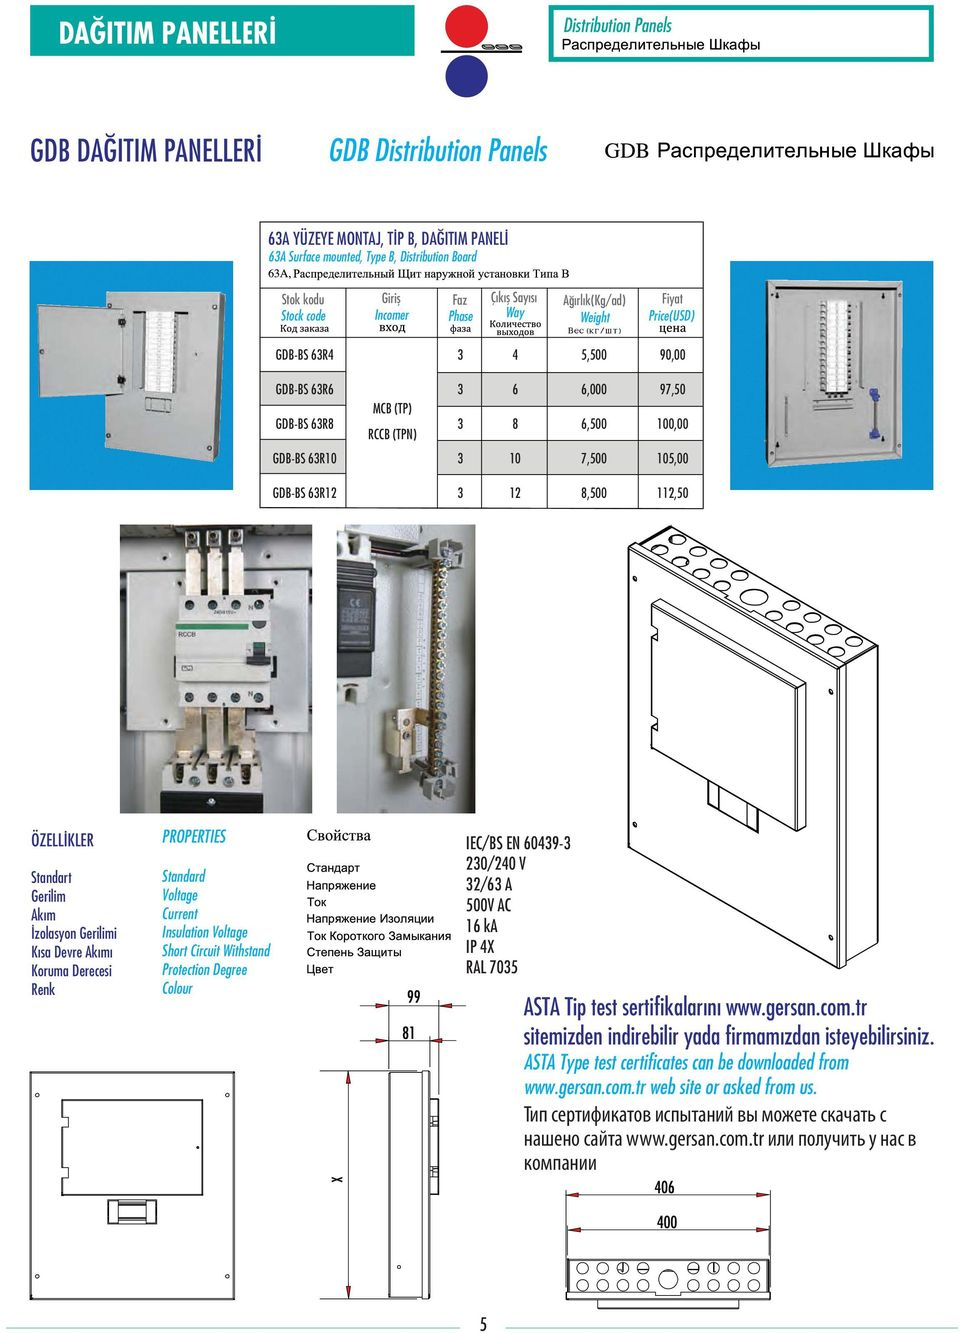 Standart Gerilim Akım İzolasyon Gerilimi Kısa Devre Akımı Koruma Derecesi Renk PROPERTIES Standard Voltage Current Insulation Voltage Short Circuit Withstand Protection Degree Colour IEC/BS EN